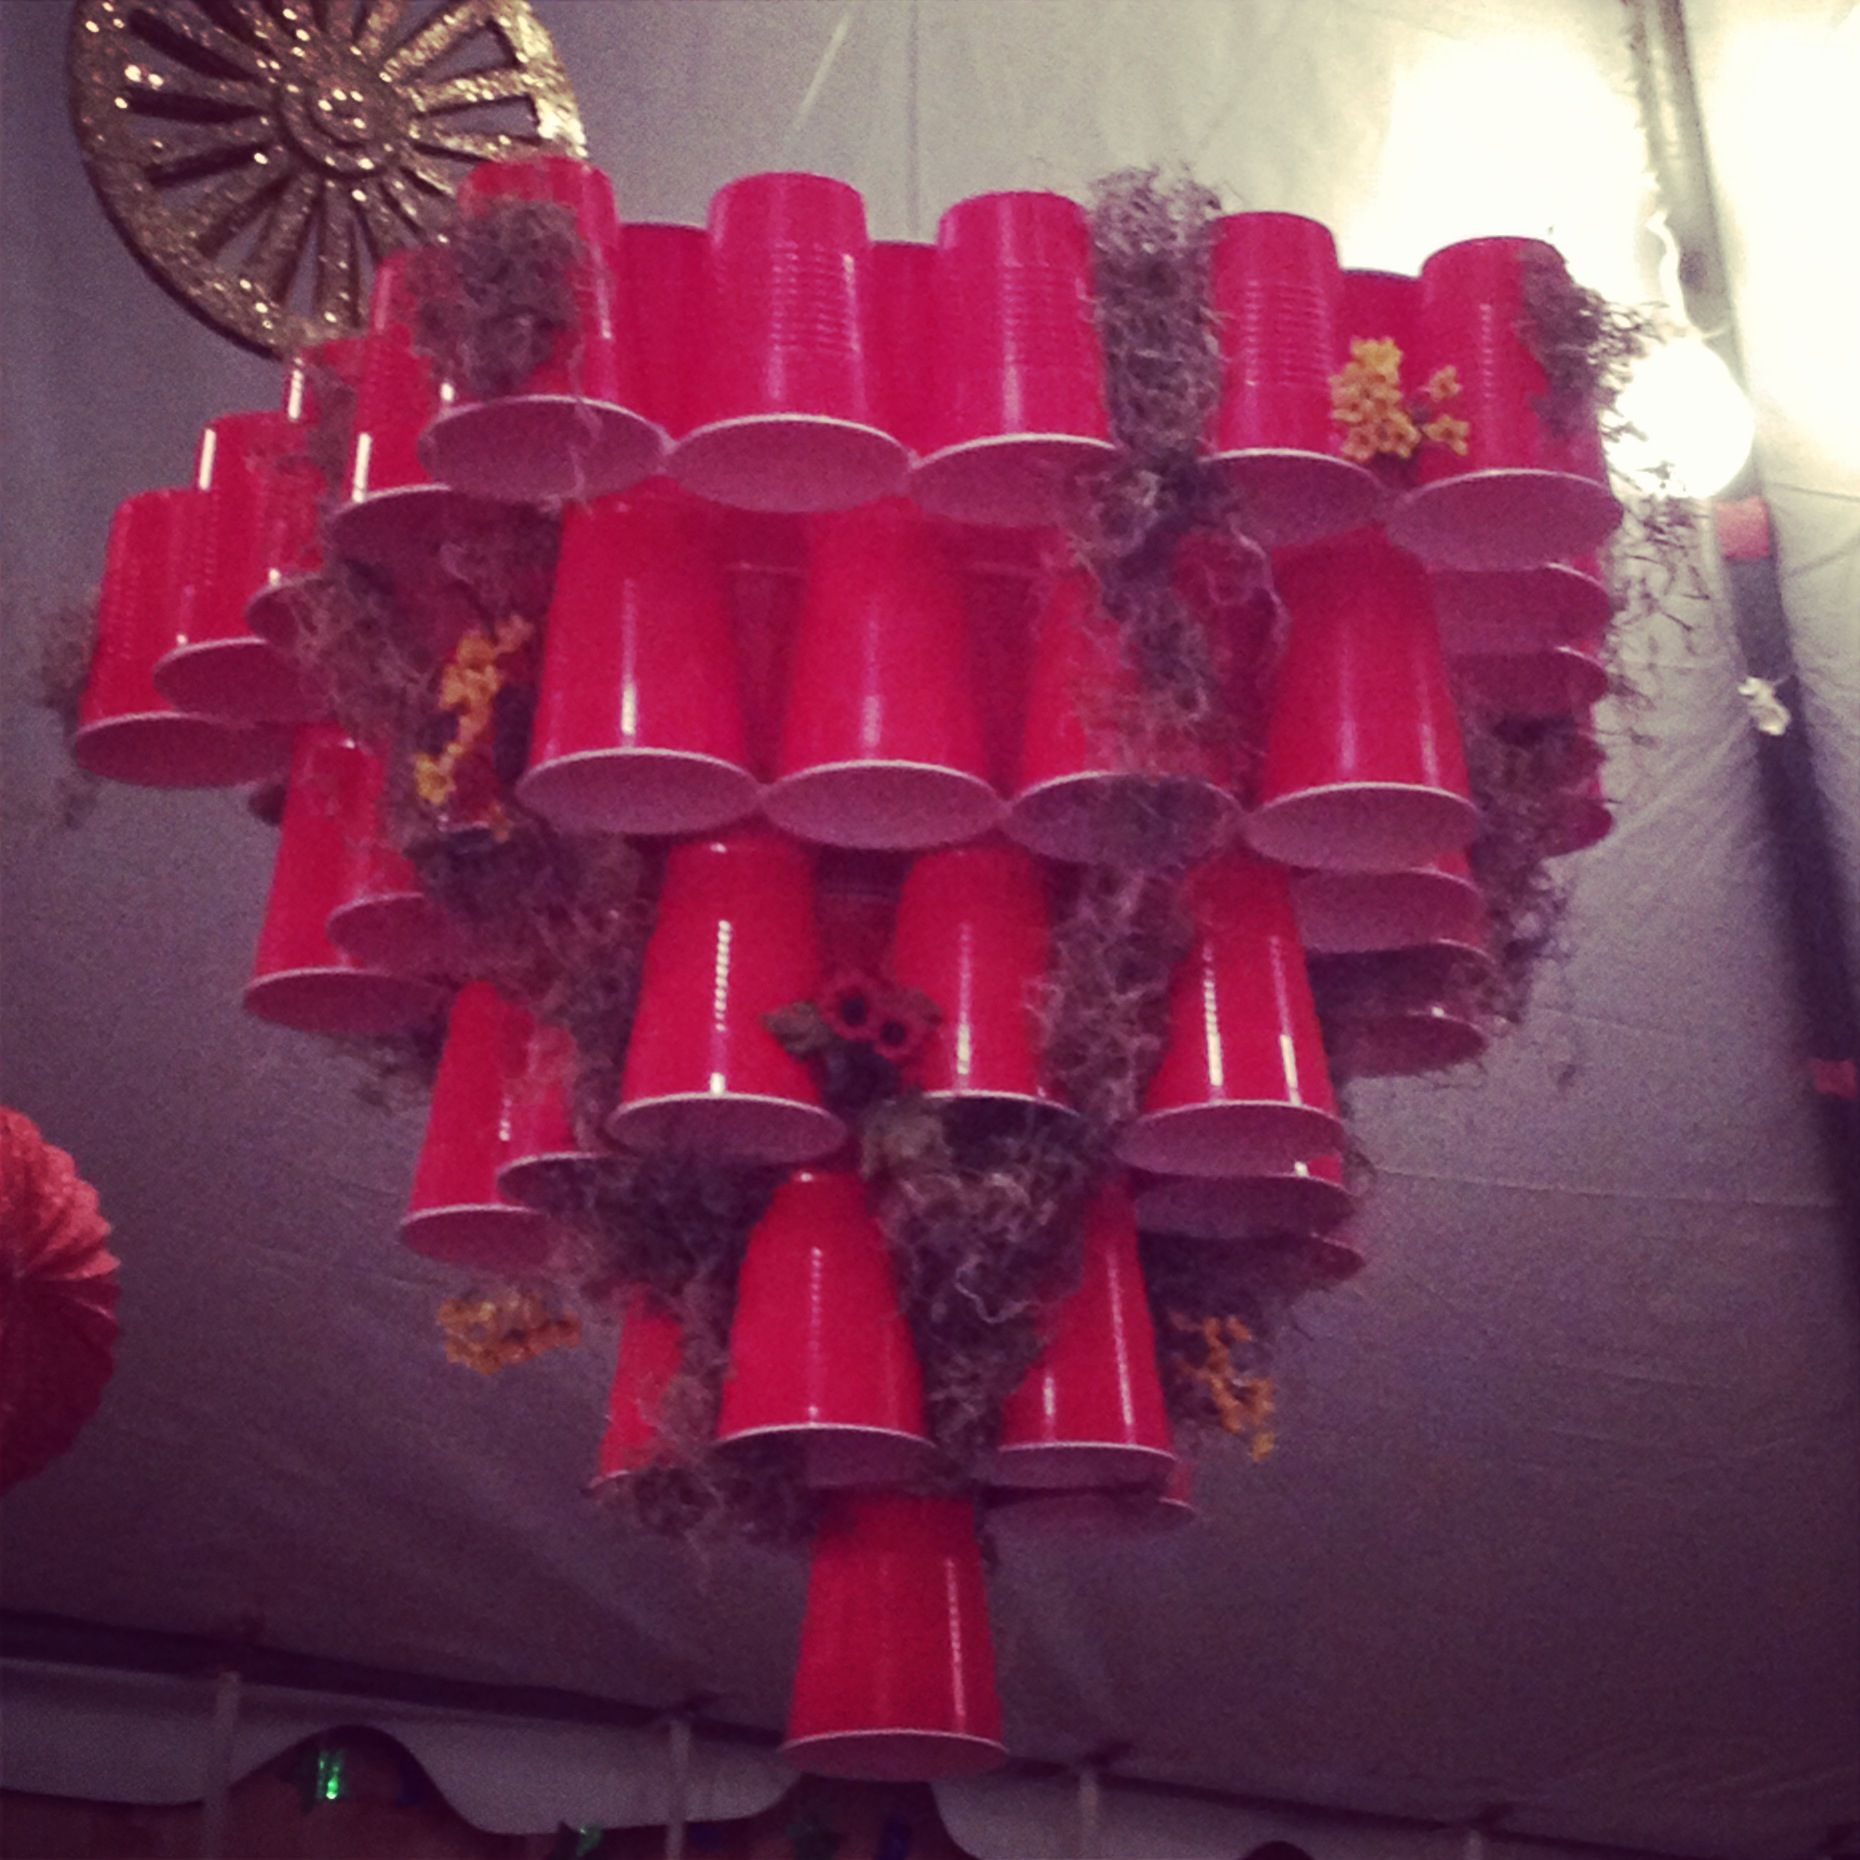 White Trash Christmas Decorations: Red Solo Cup Chandelier!